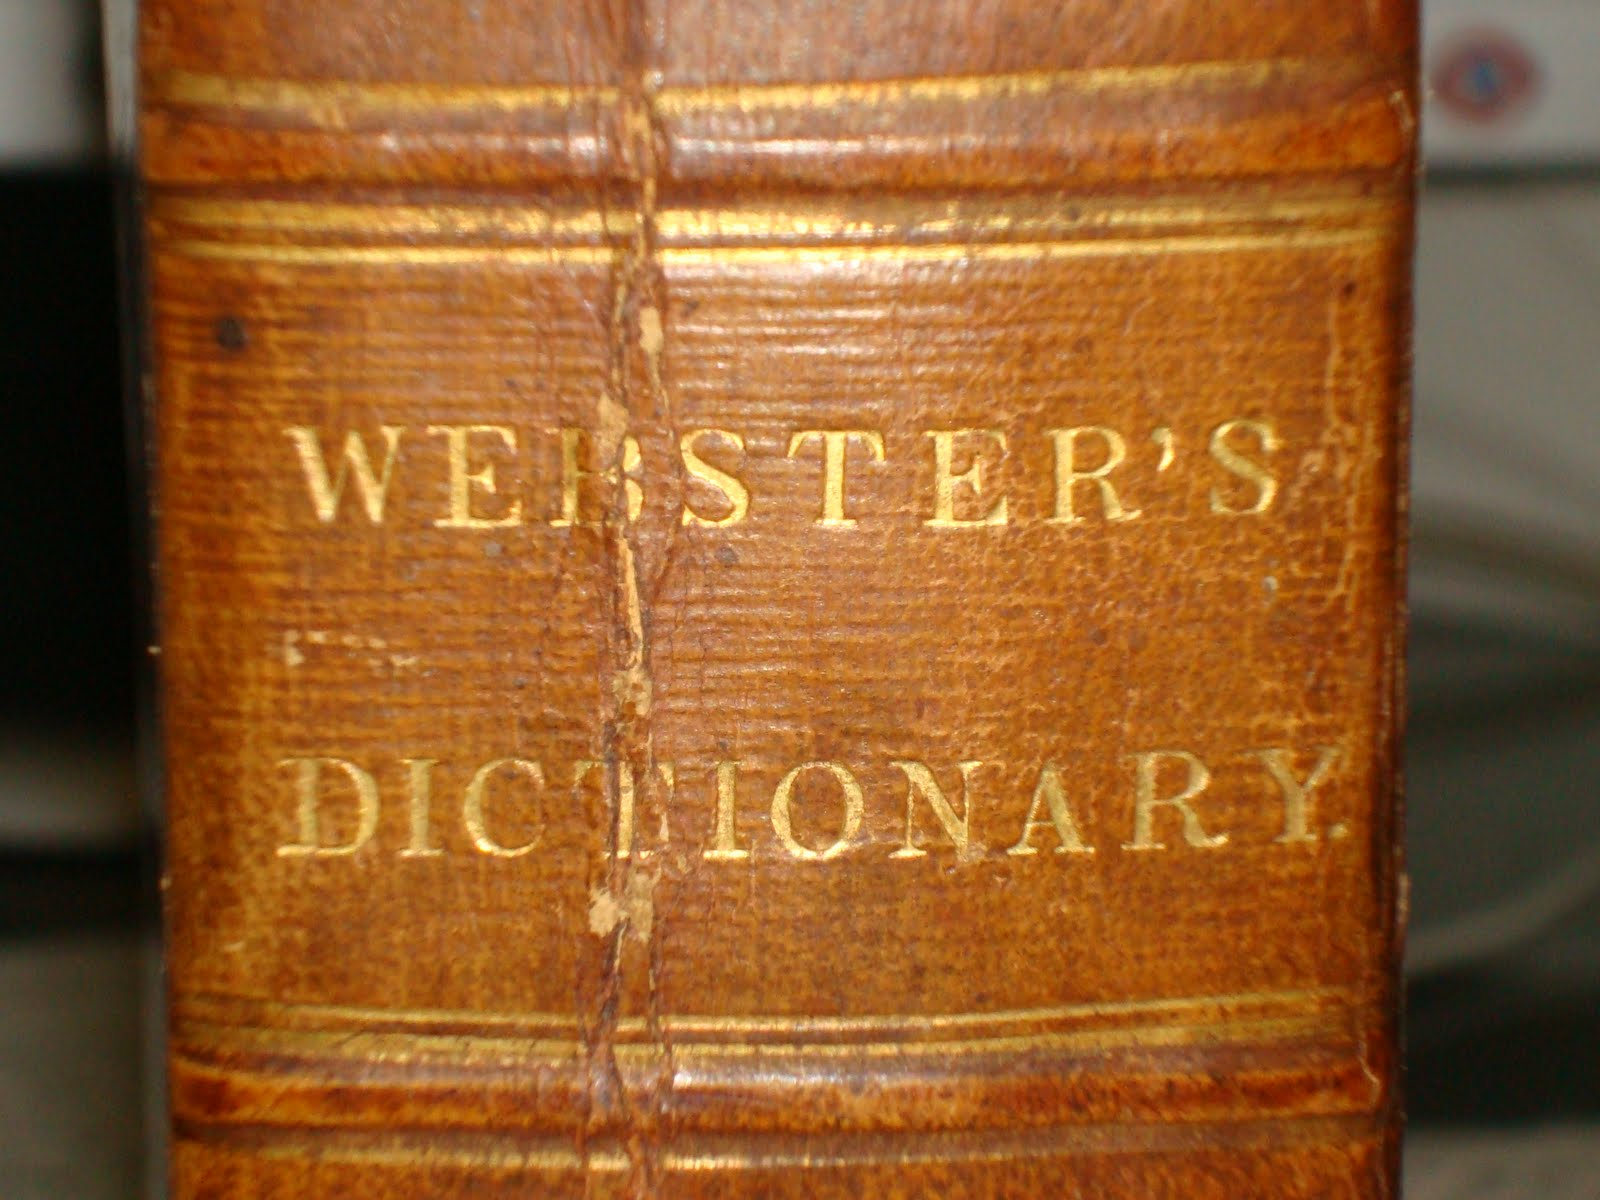 Philologophile: My 1838 Webster